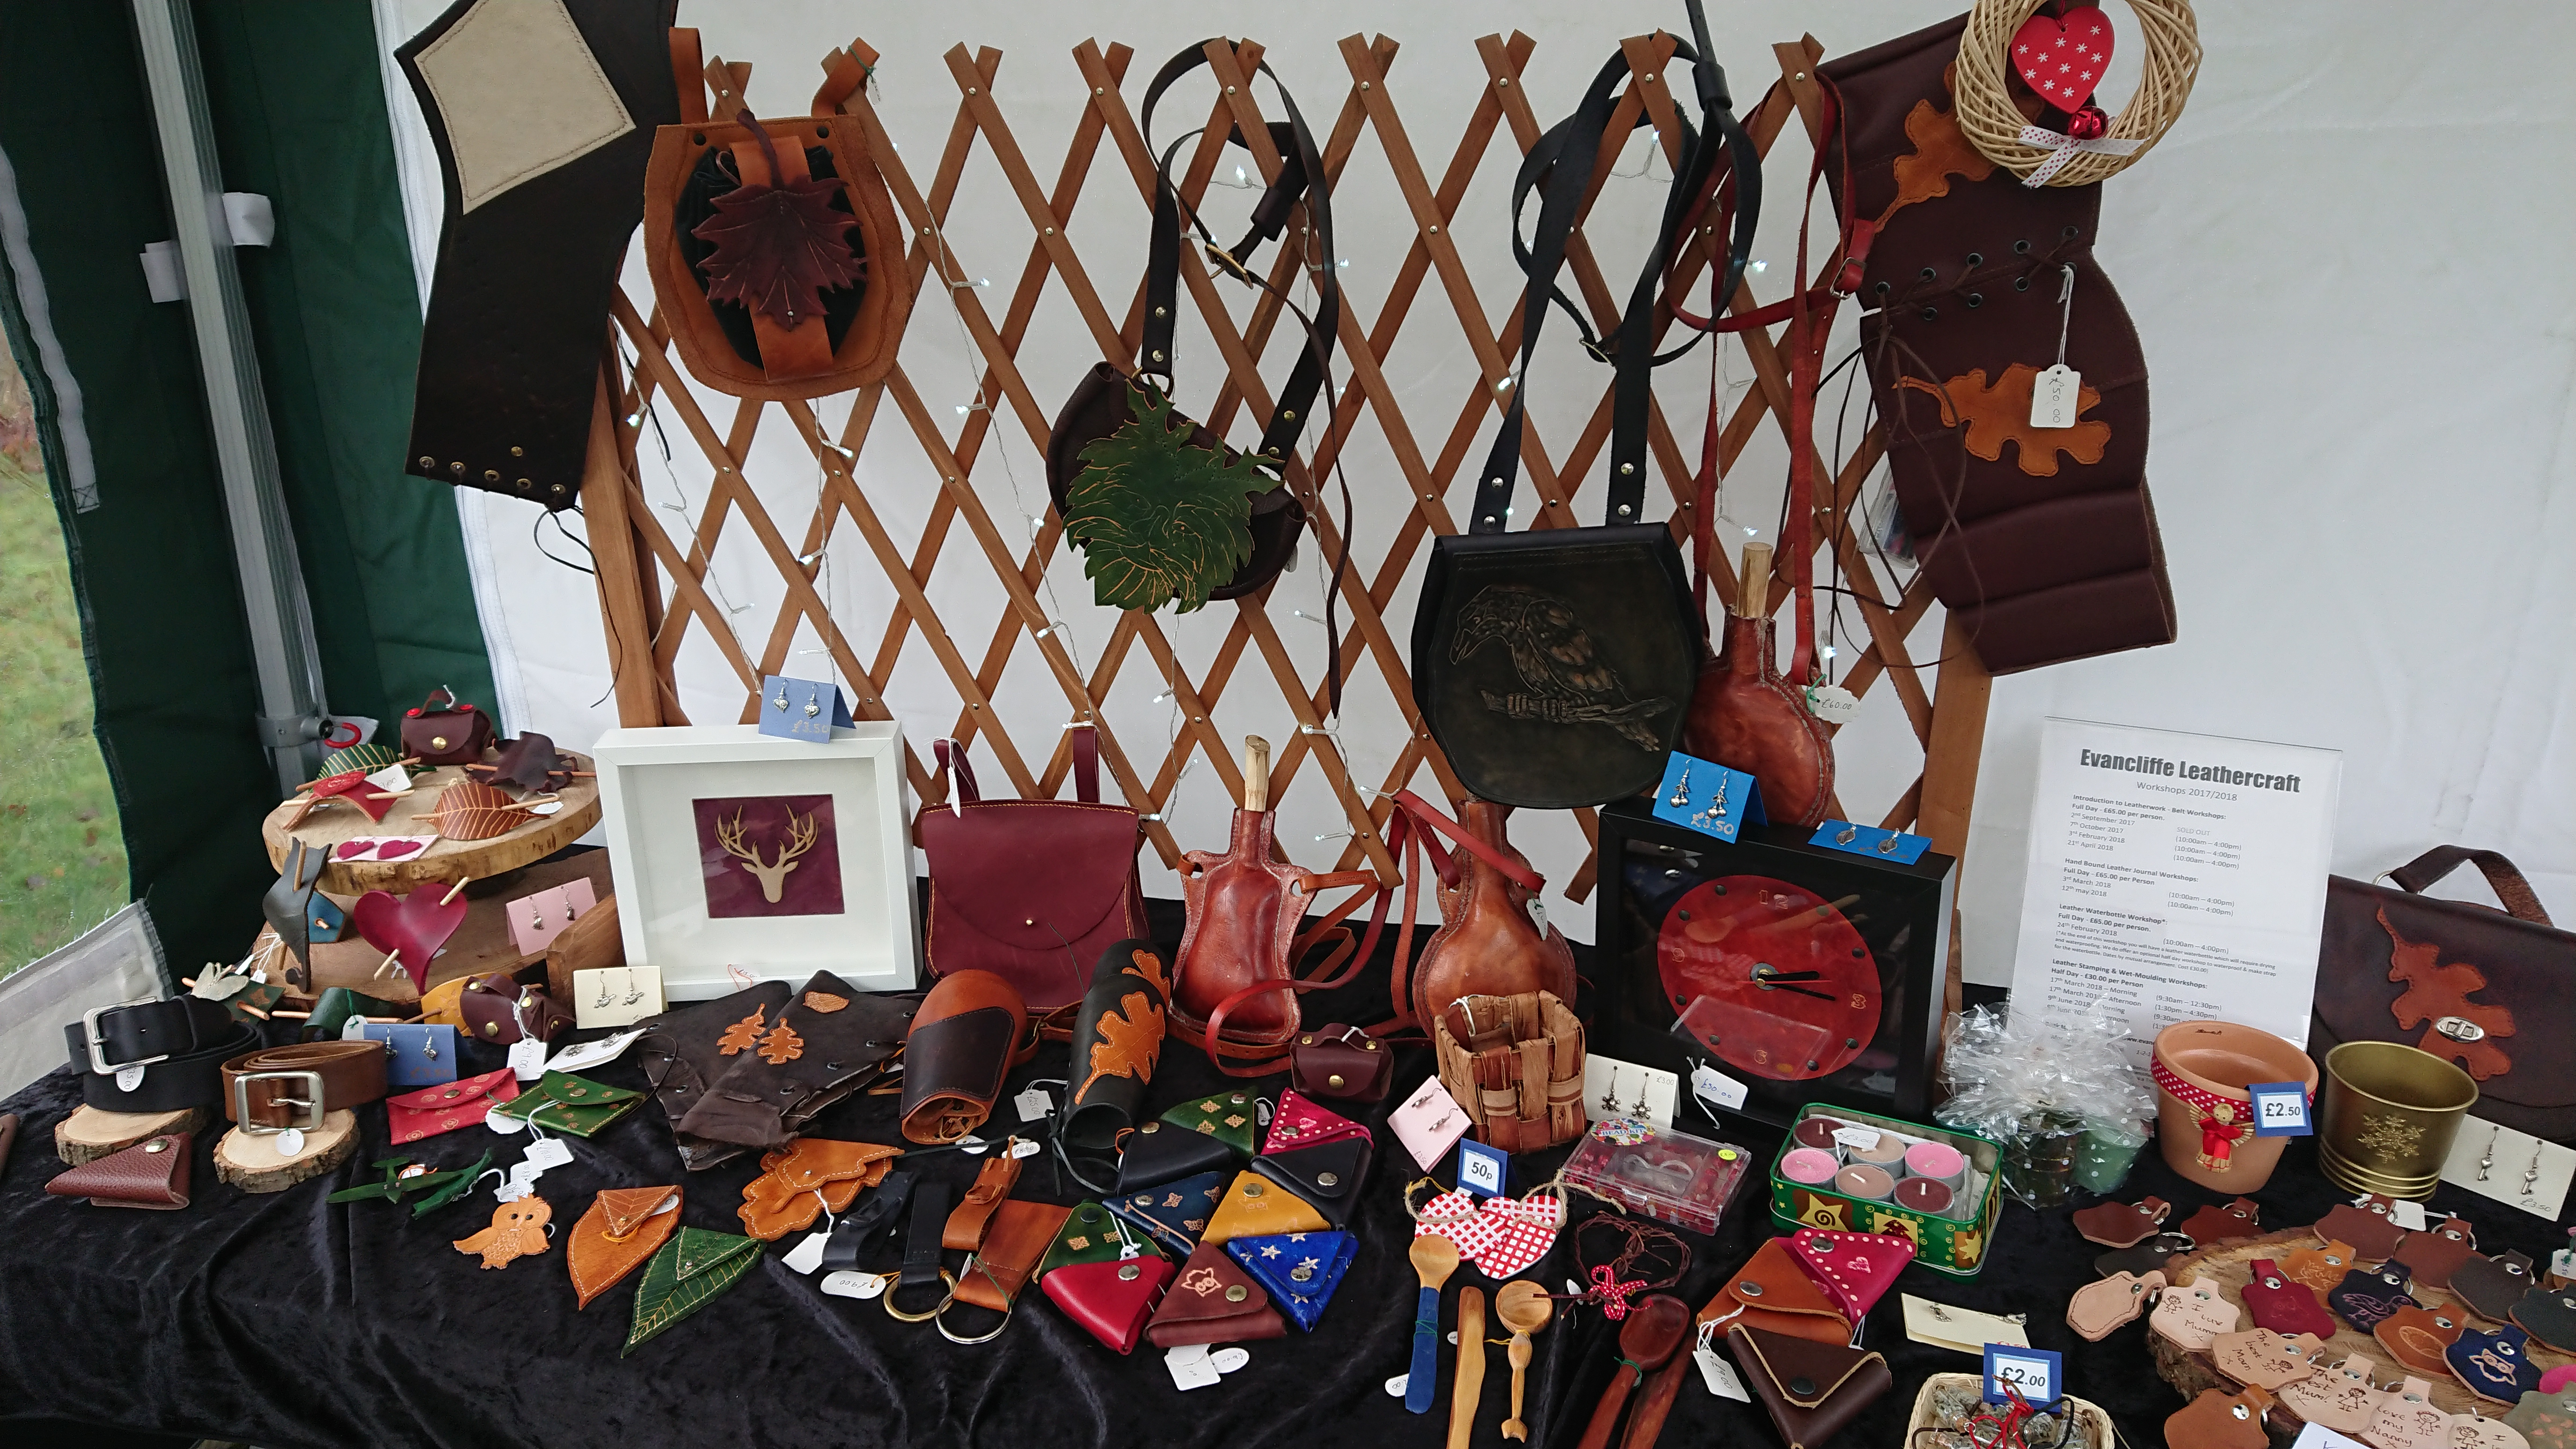 Evancliffe Leathercraft Stall